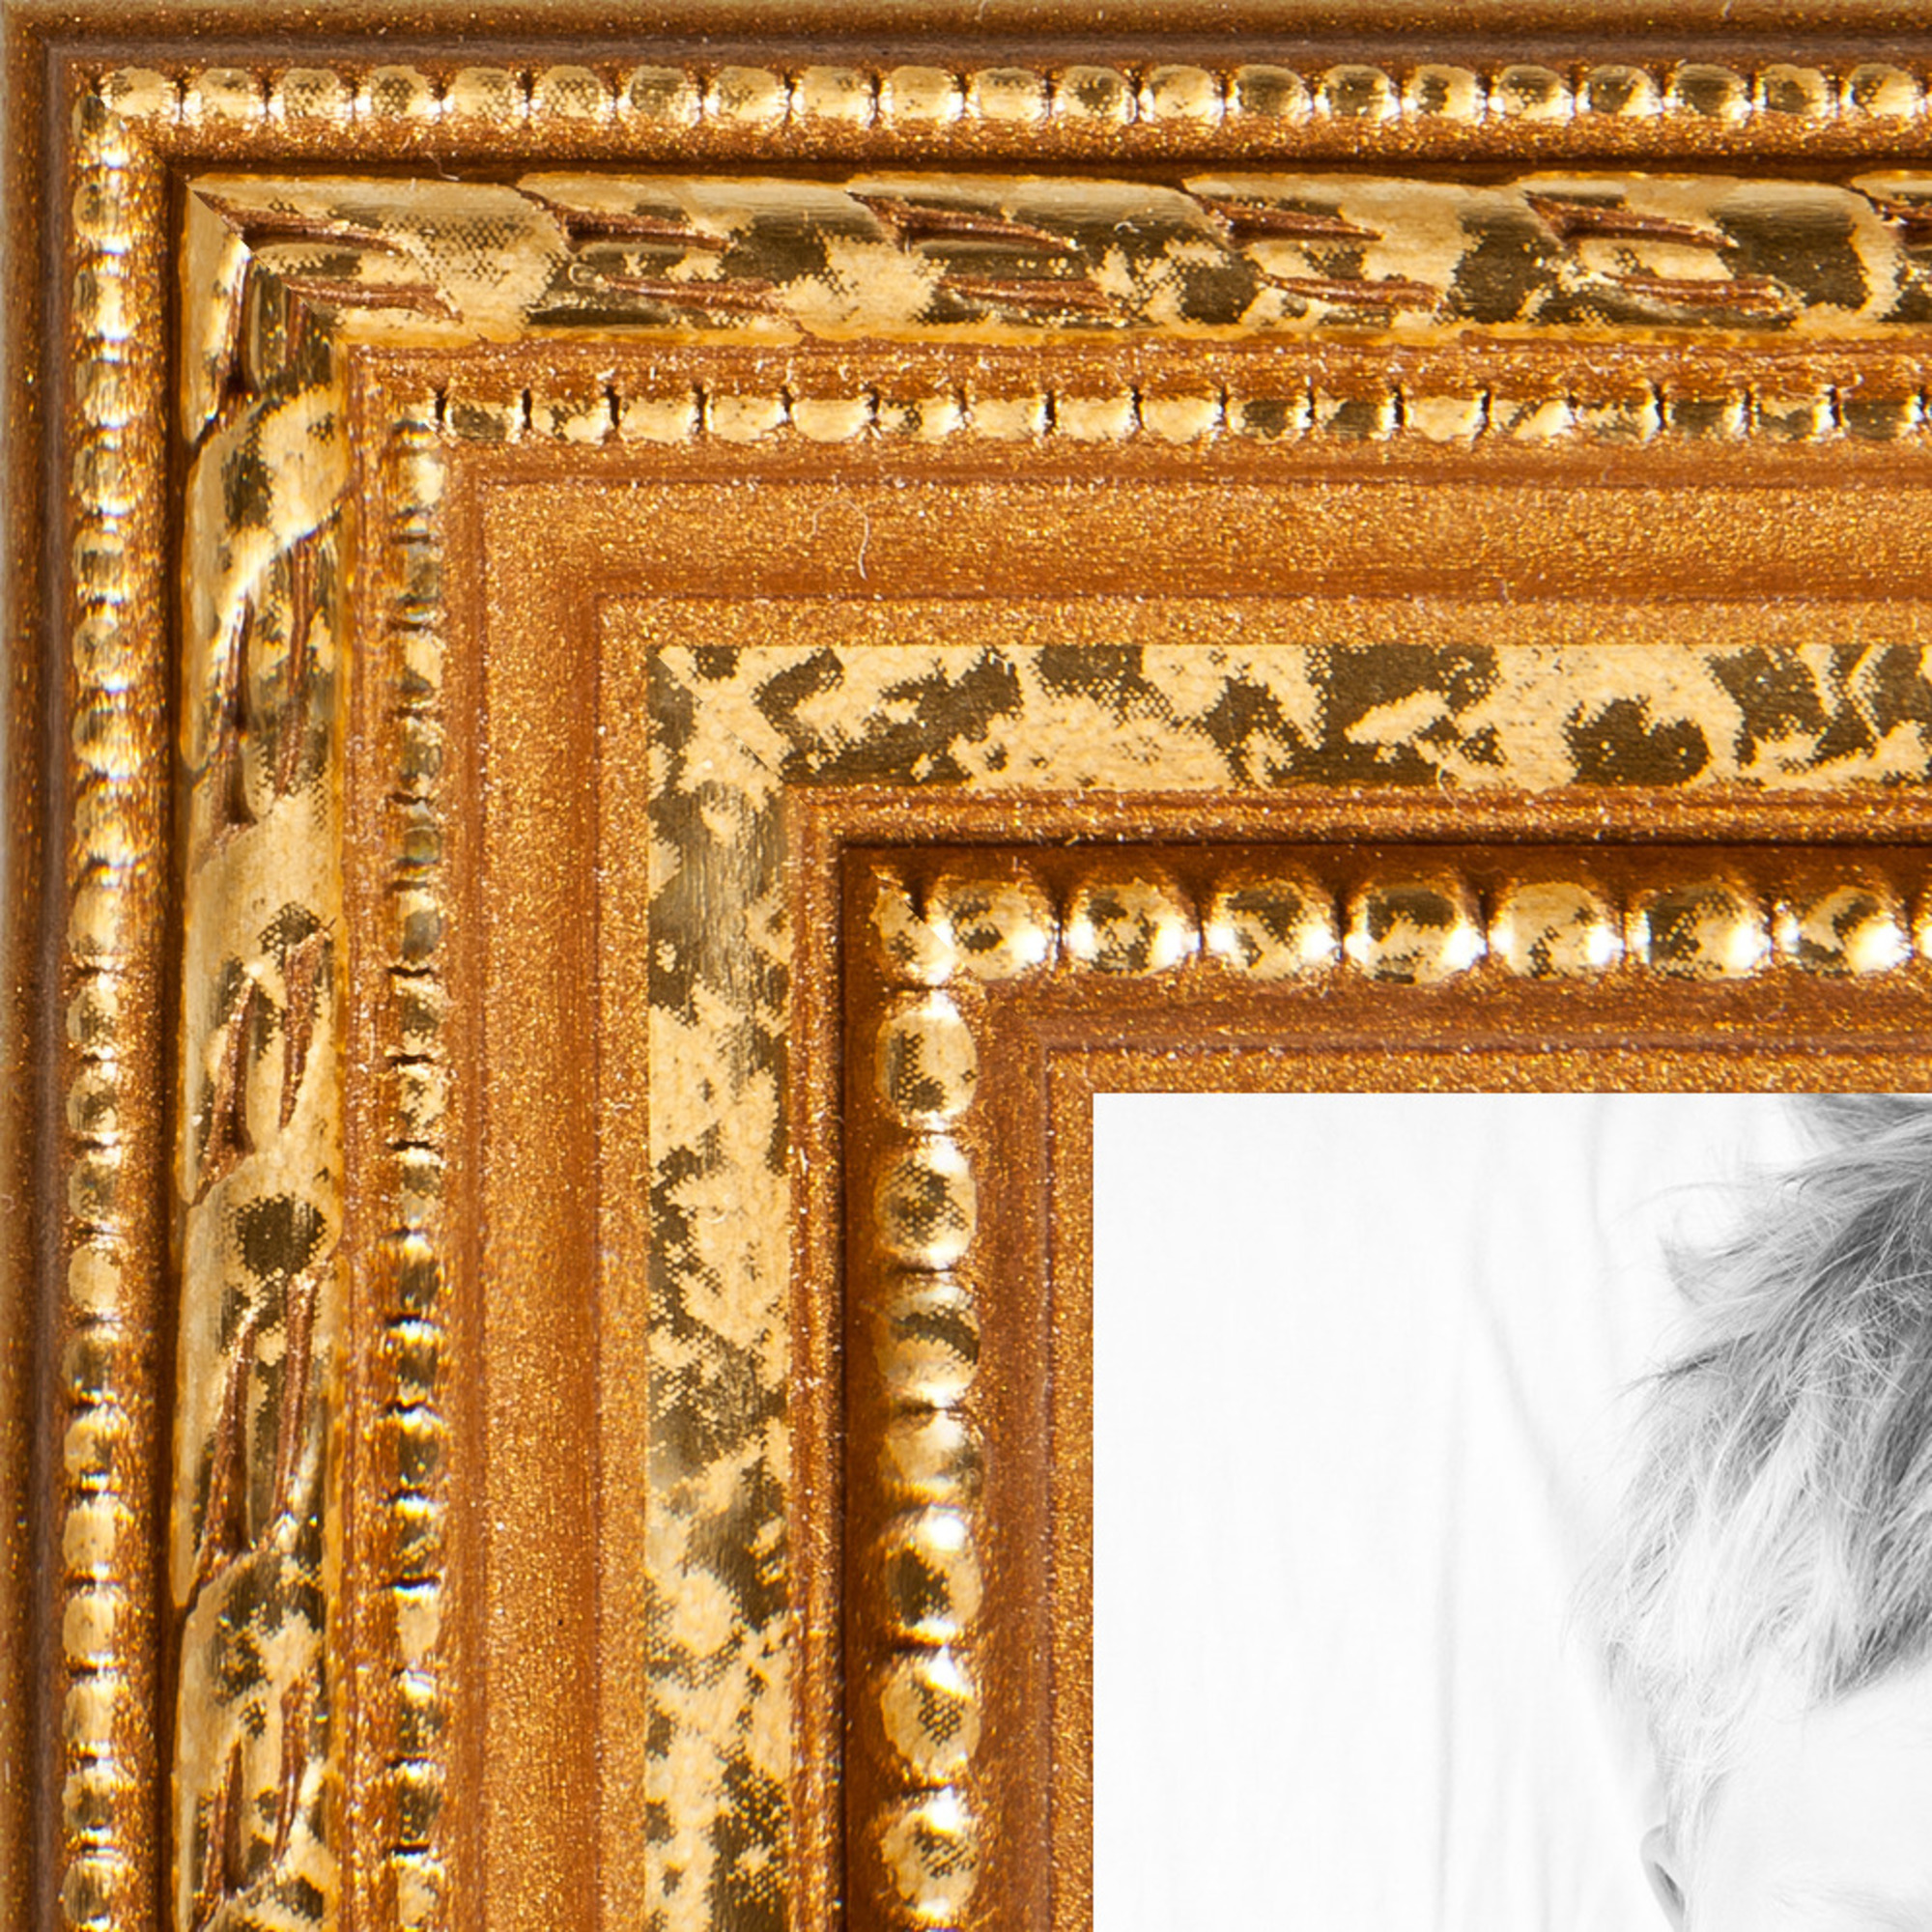 arttoframes 24x36 inch gold picture frame this gold wood poster frame is great for your art or photos comes with styrene 4317 walmart com